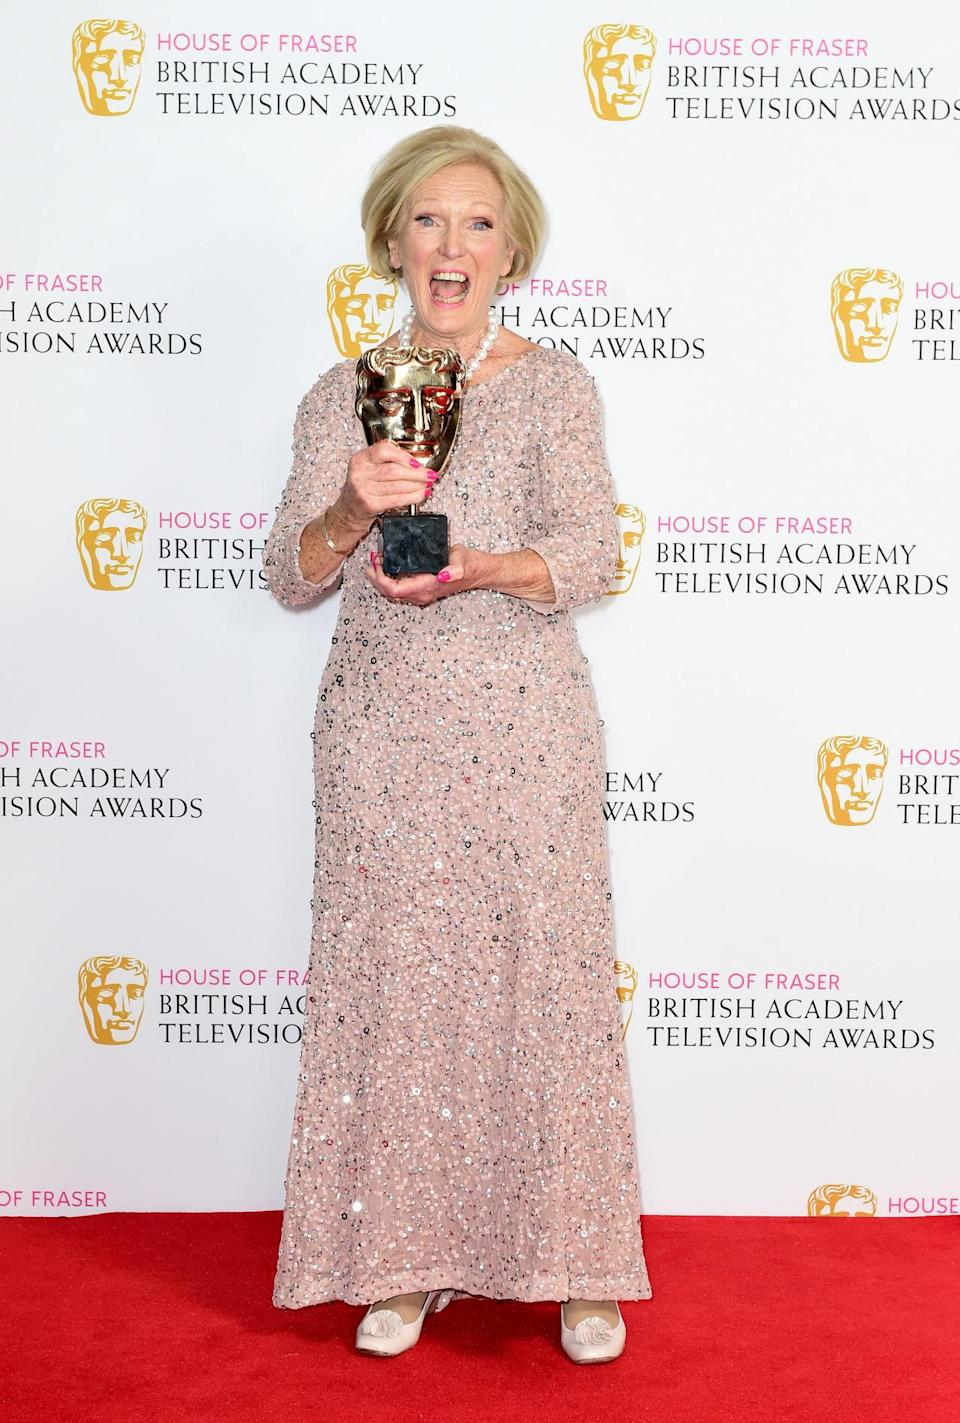 <p>The presenter wore a shimmering Adriana Papell dress to pick up the award for Best Feature at the BAFTA TV Awards. </p><p><i>[Photo: PA]</i><br></p>